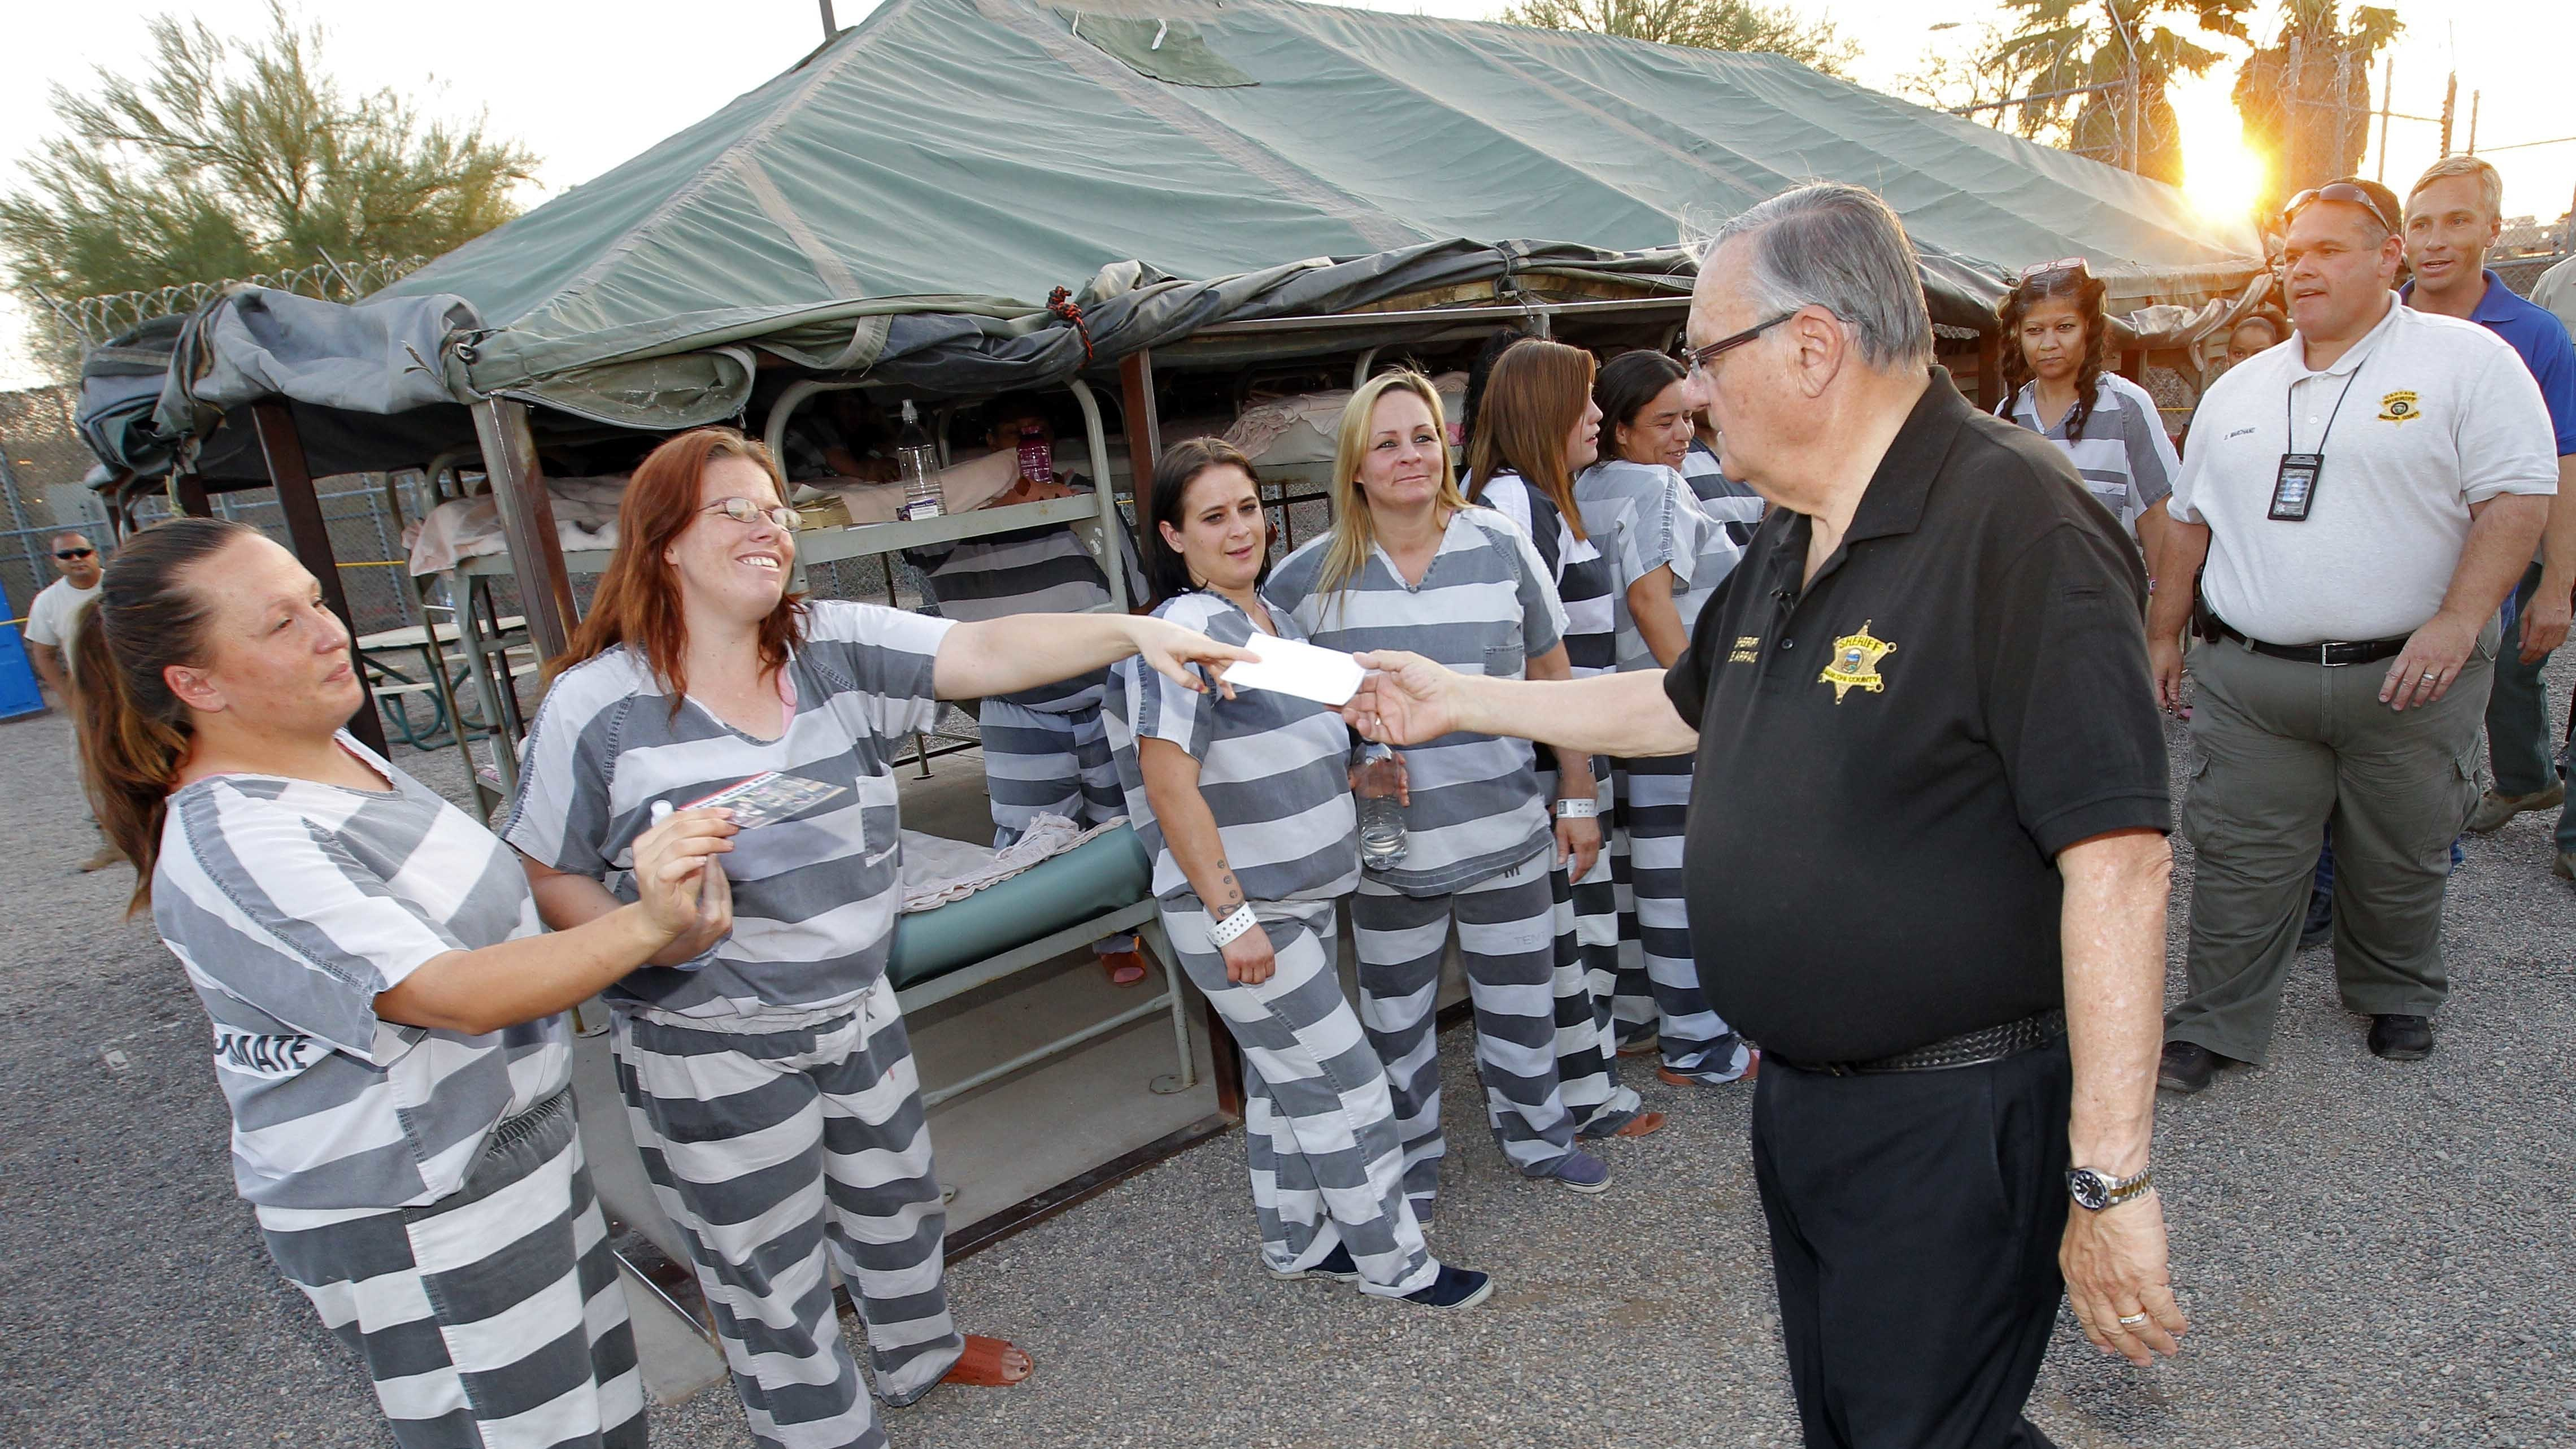 """Maricopa County Sheriff Joe Arpaio signs autographs for inmates as he walks through  """"Tent City"""" in Phoenix in 2012."""